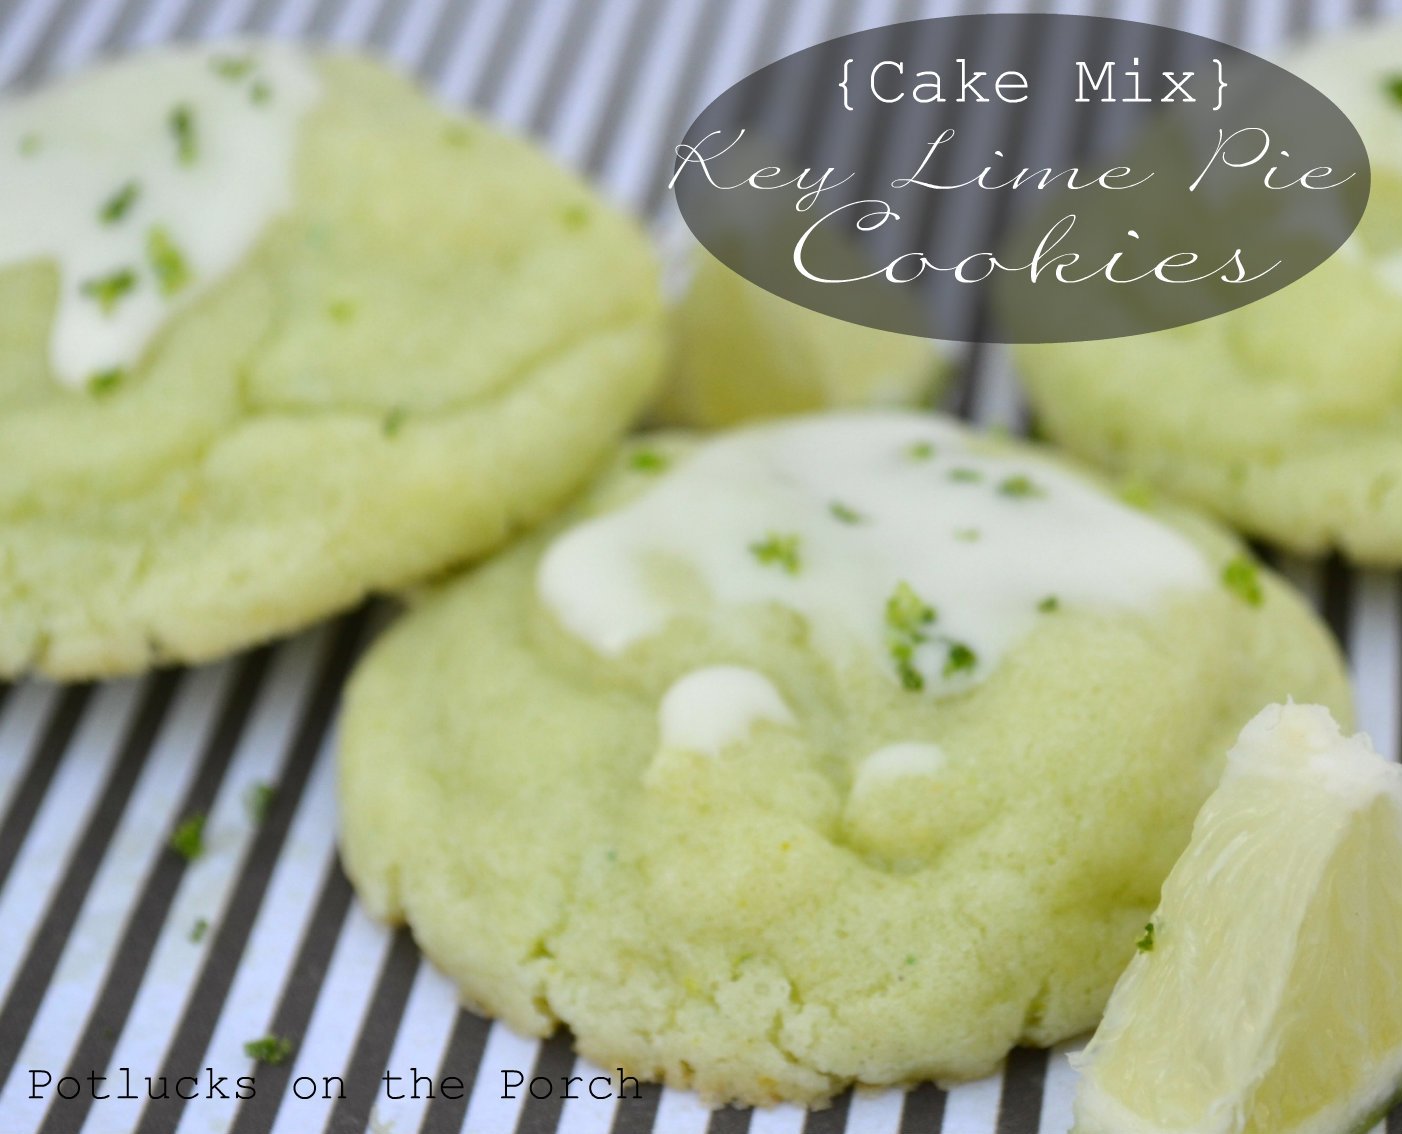 Potlucks on the Porch: {Cake Mix} Key Lime Pie Cookies